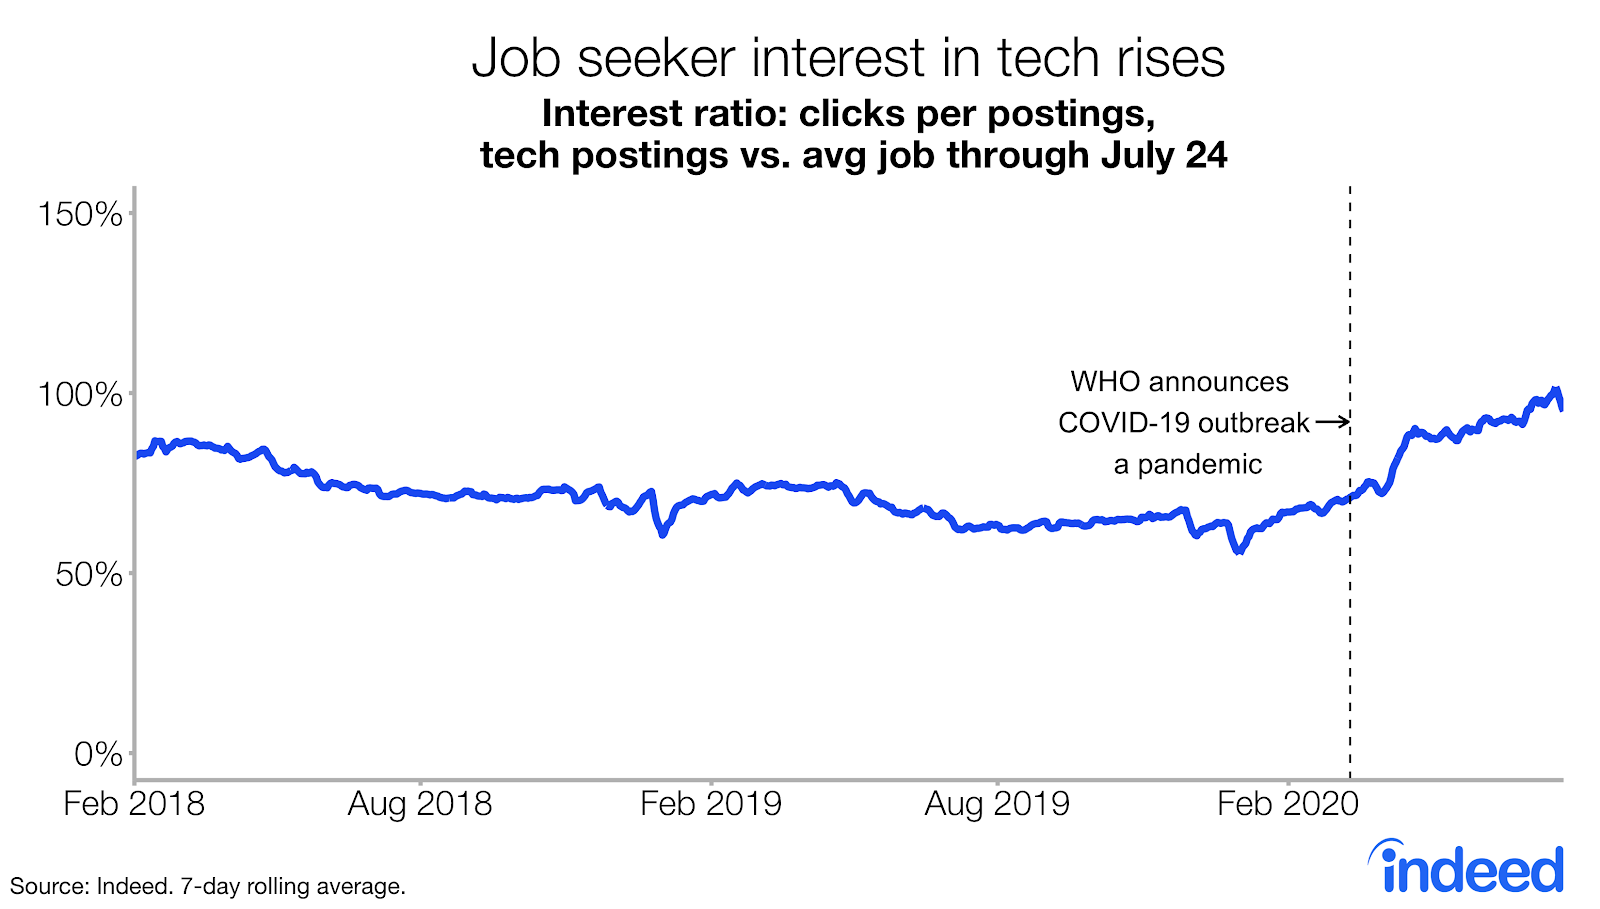 Job seeker interest in tech rises